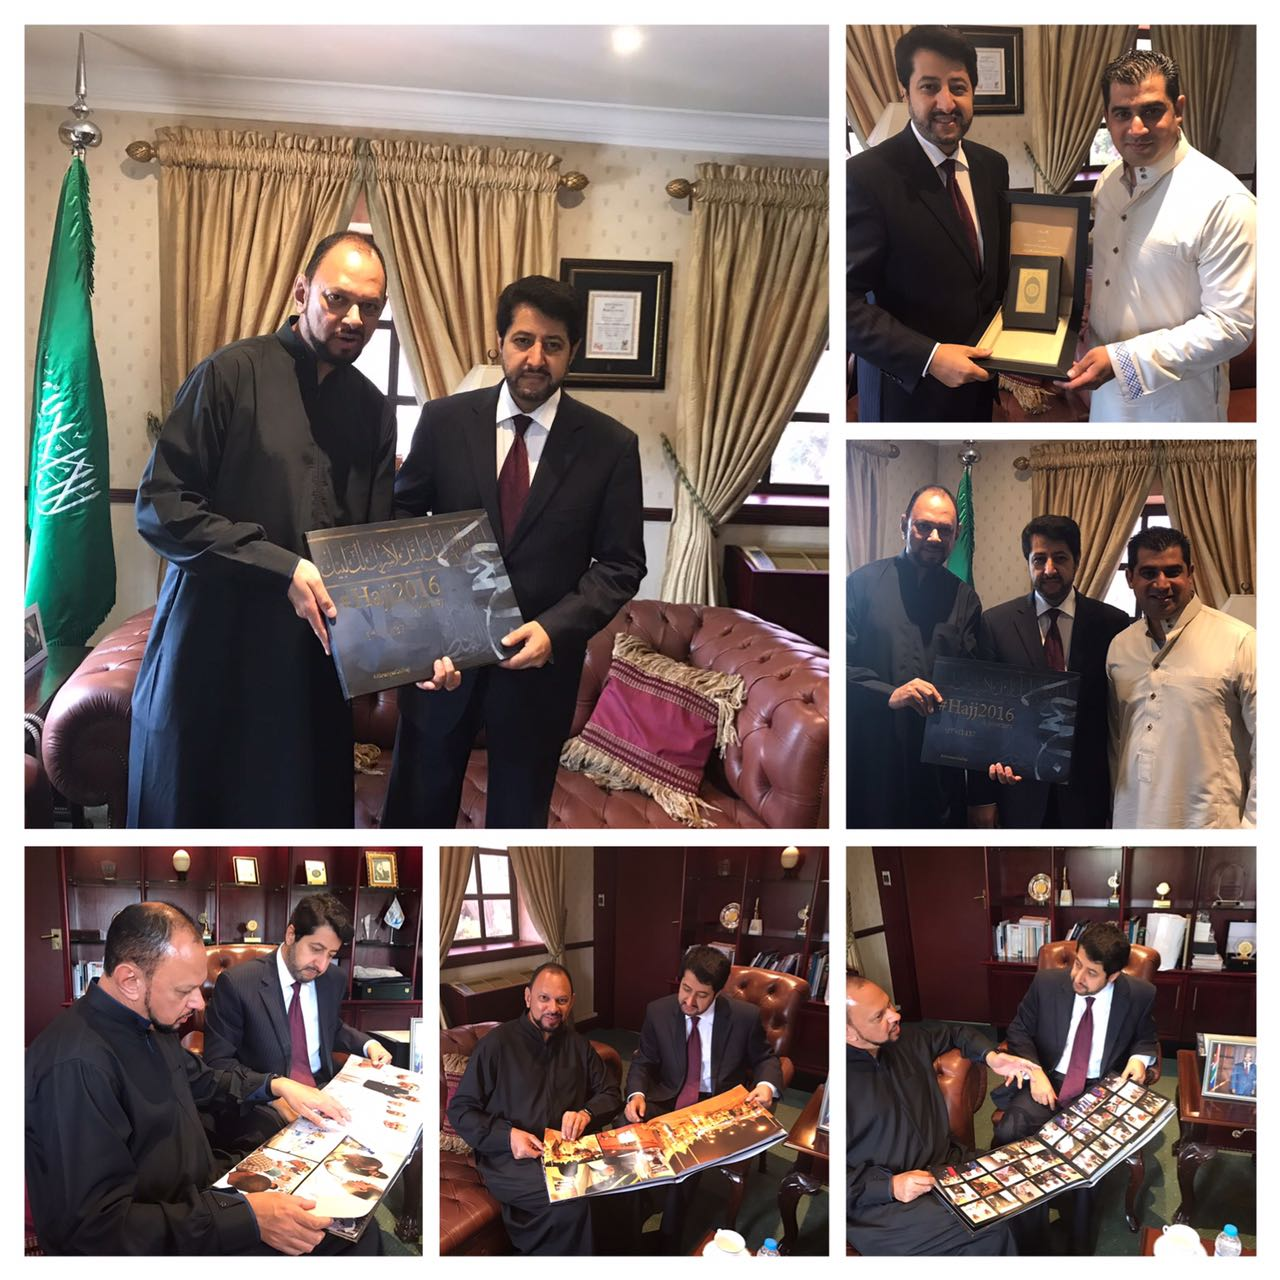 Saudi Ambassador To Sa Presented With Hajj2017 Abramjeeonhajj Coffee Table Book